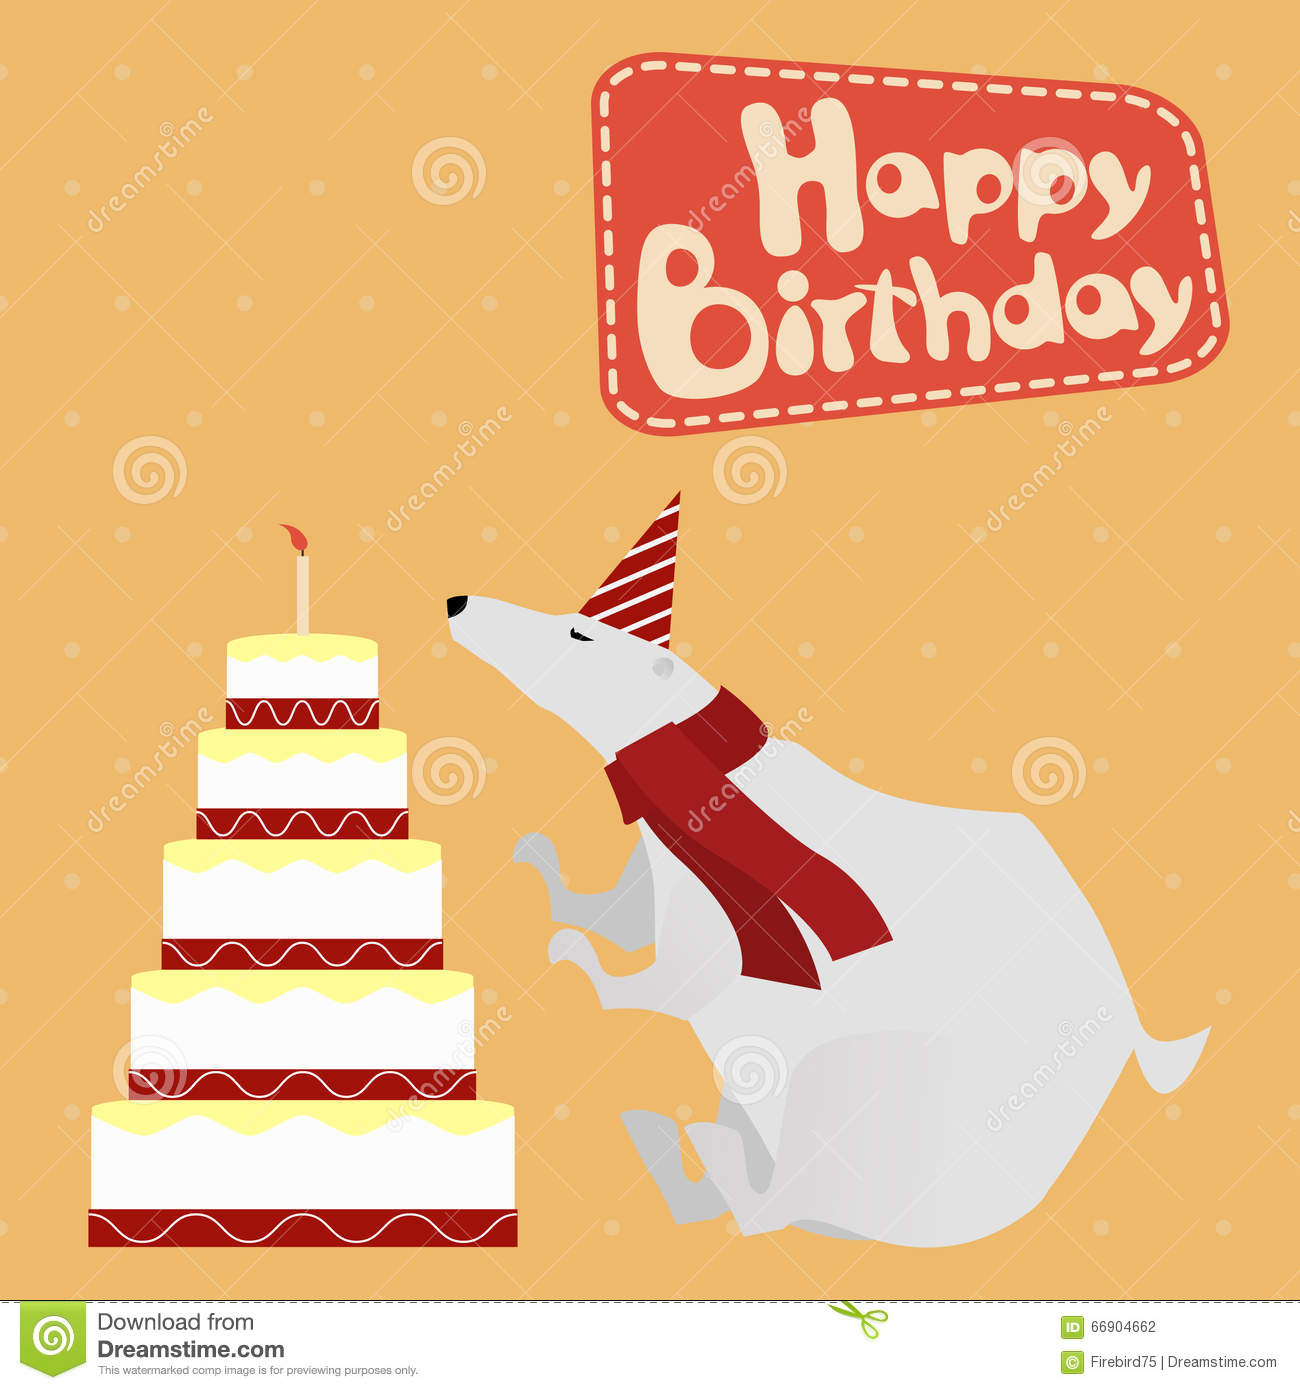 Vintage Birthday Greeting Card With Funny White Bear And